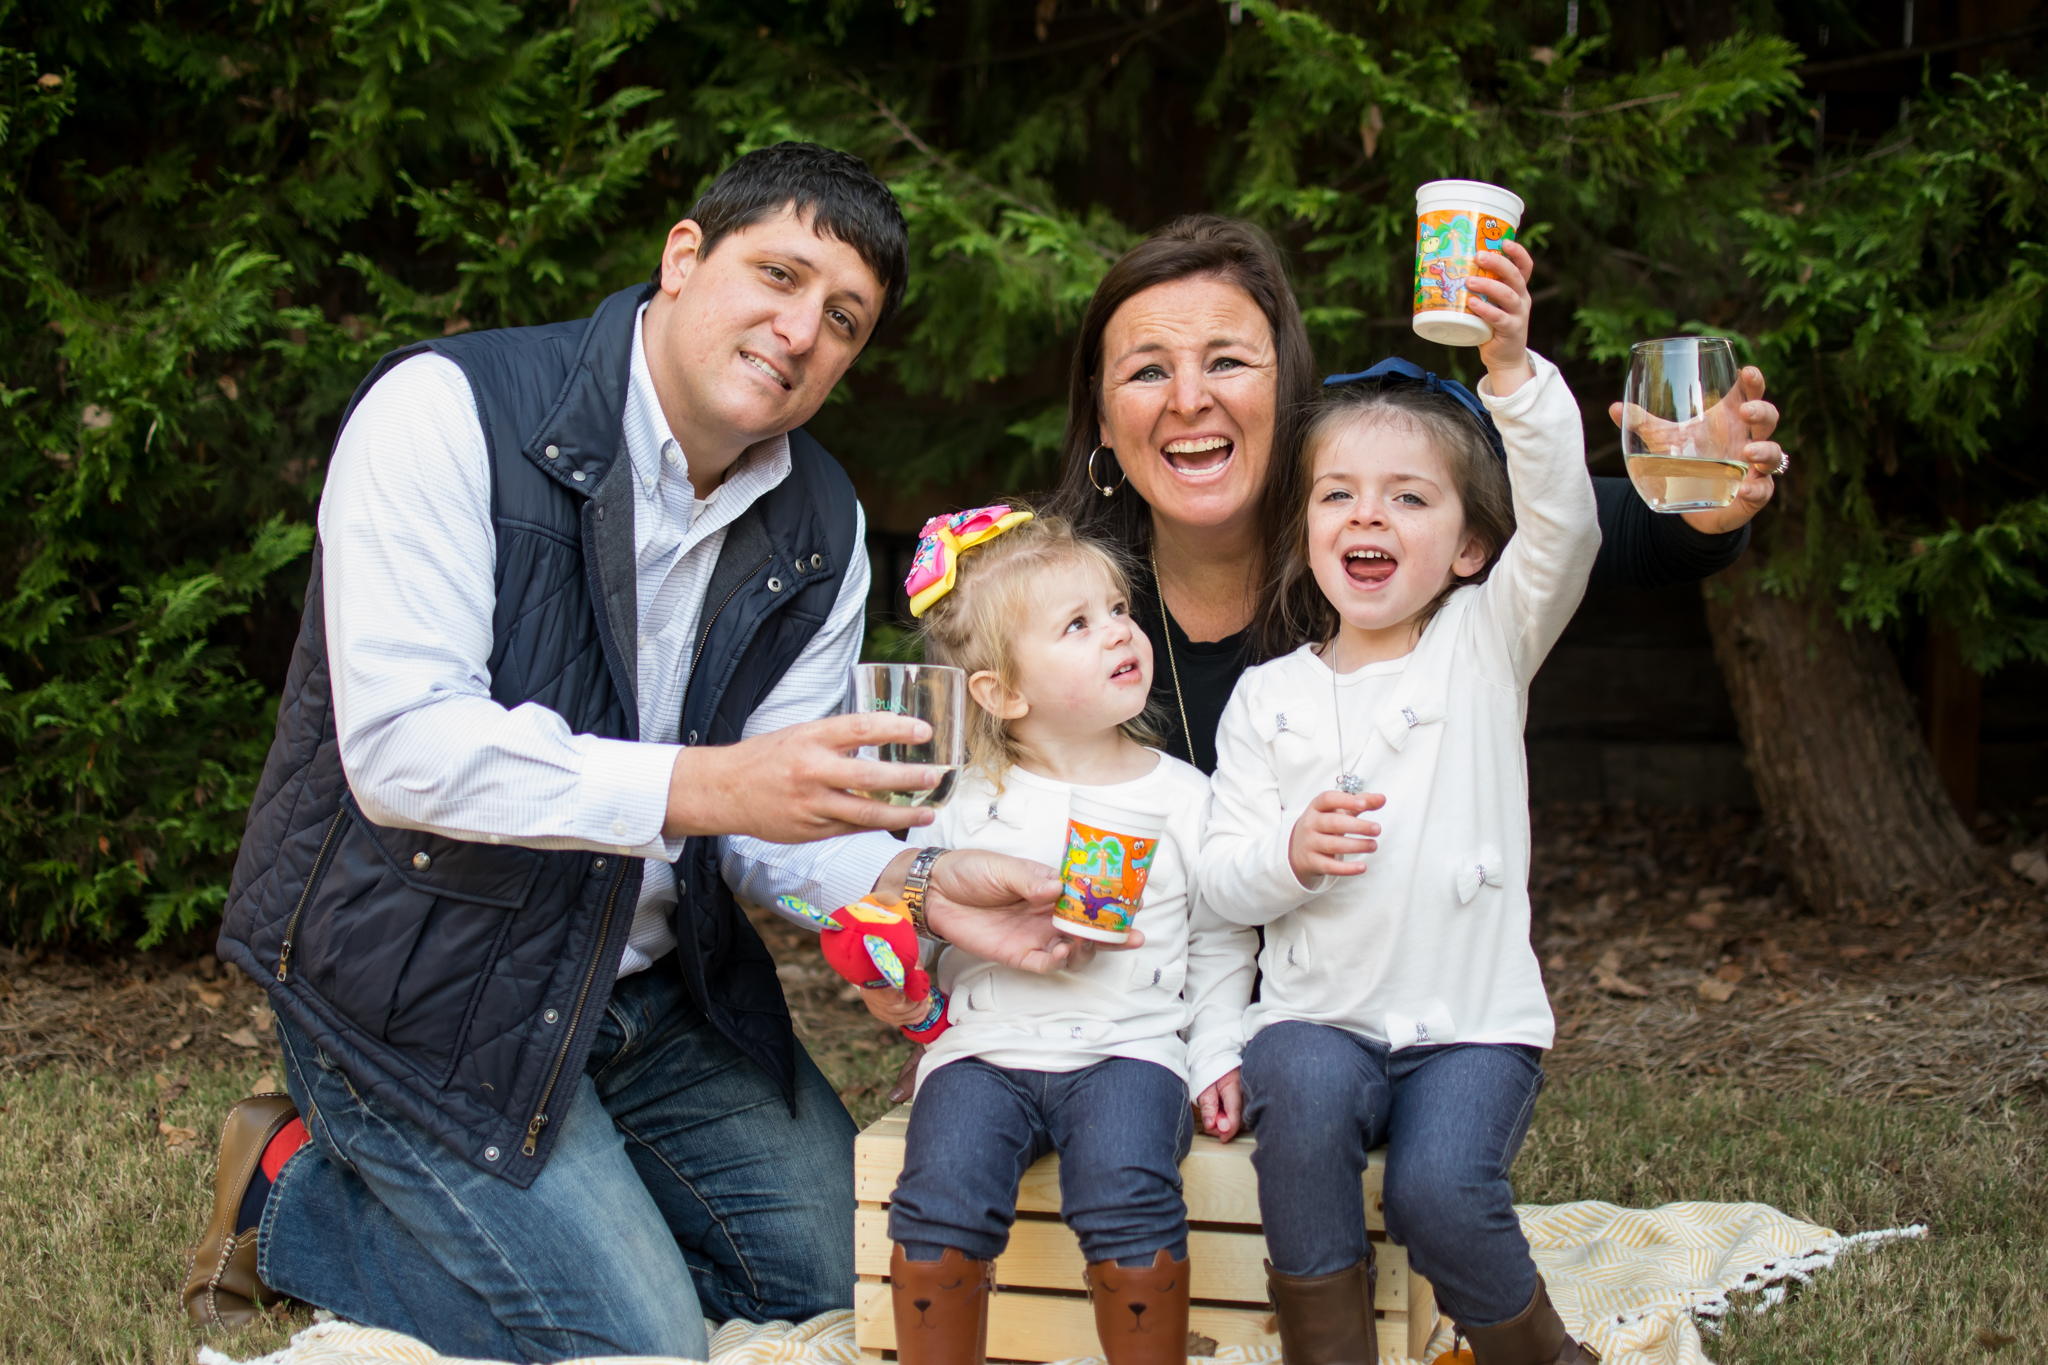 this is an image of a family of four- mother, father, two young girls holding up drinks and making a cheer